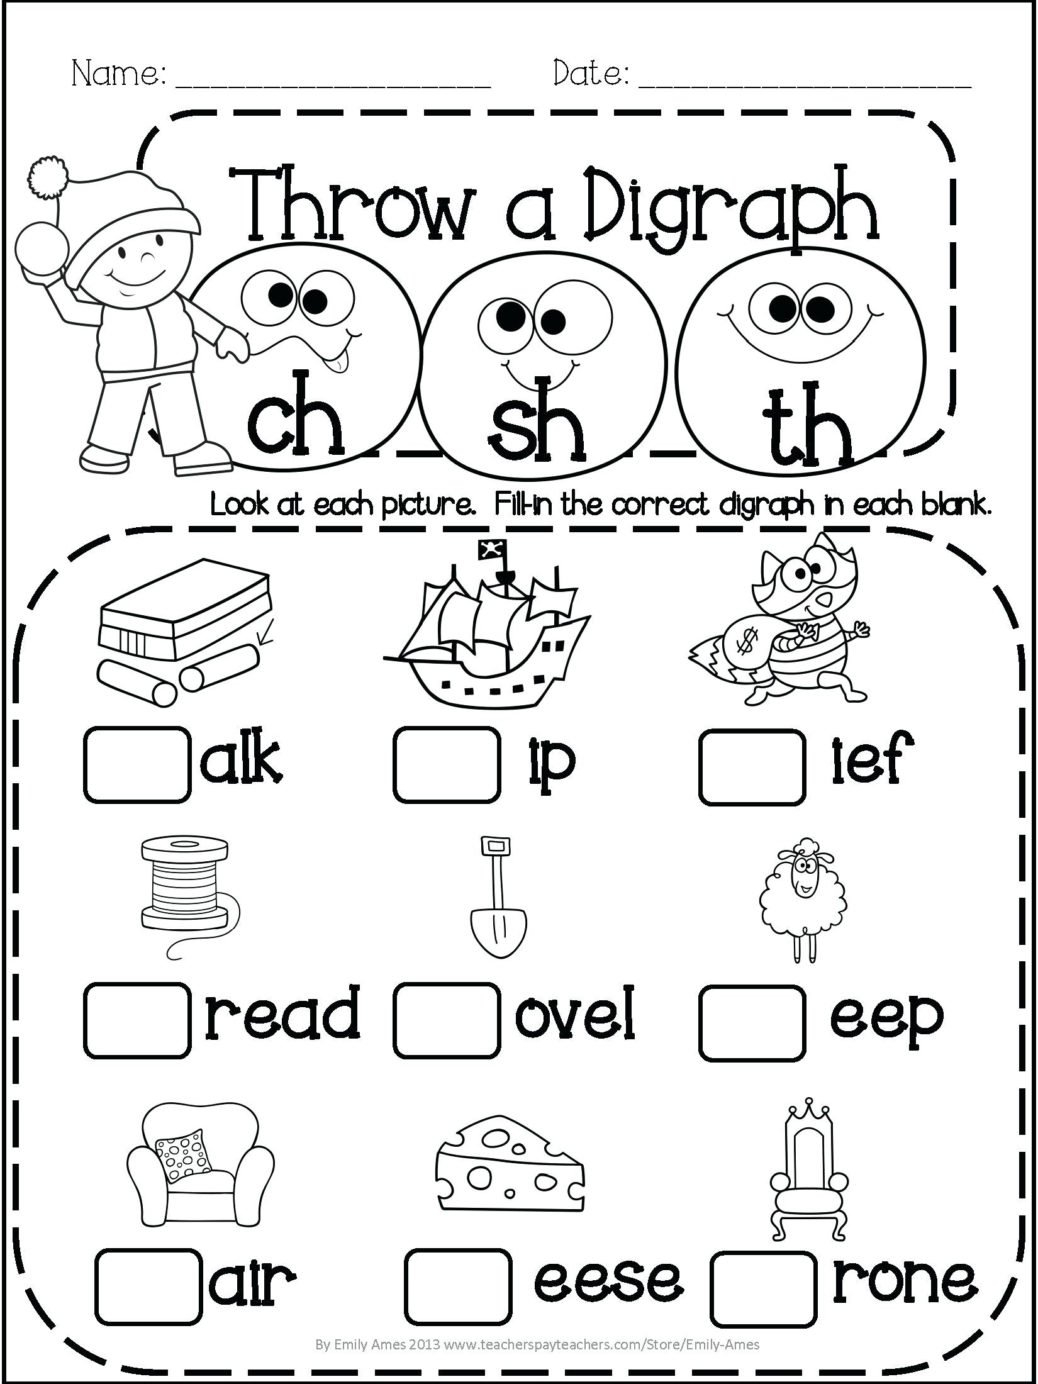 1St Grade Phonics Worksheets To Printable To  Math Worksheet For Kids Within 1St Grade Phonics Worksheets